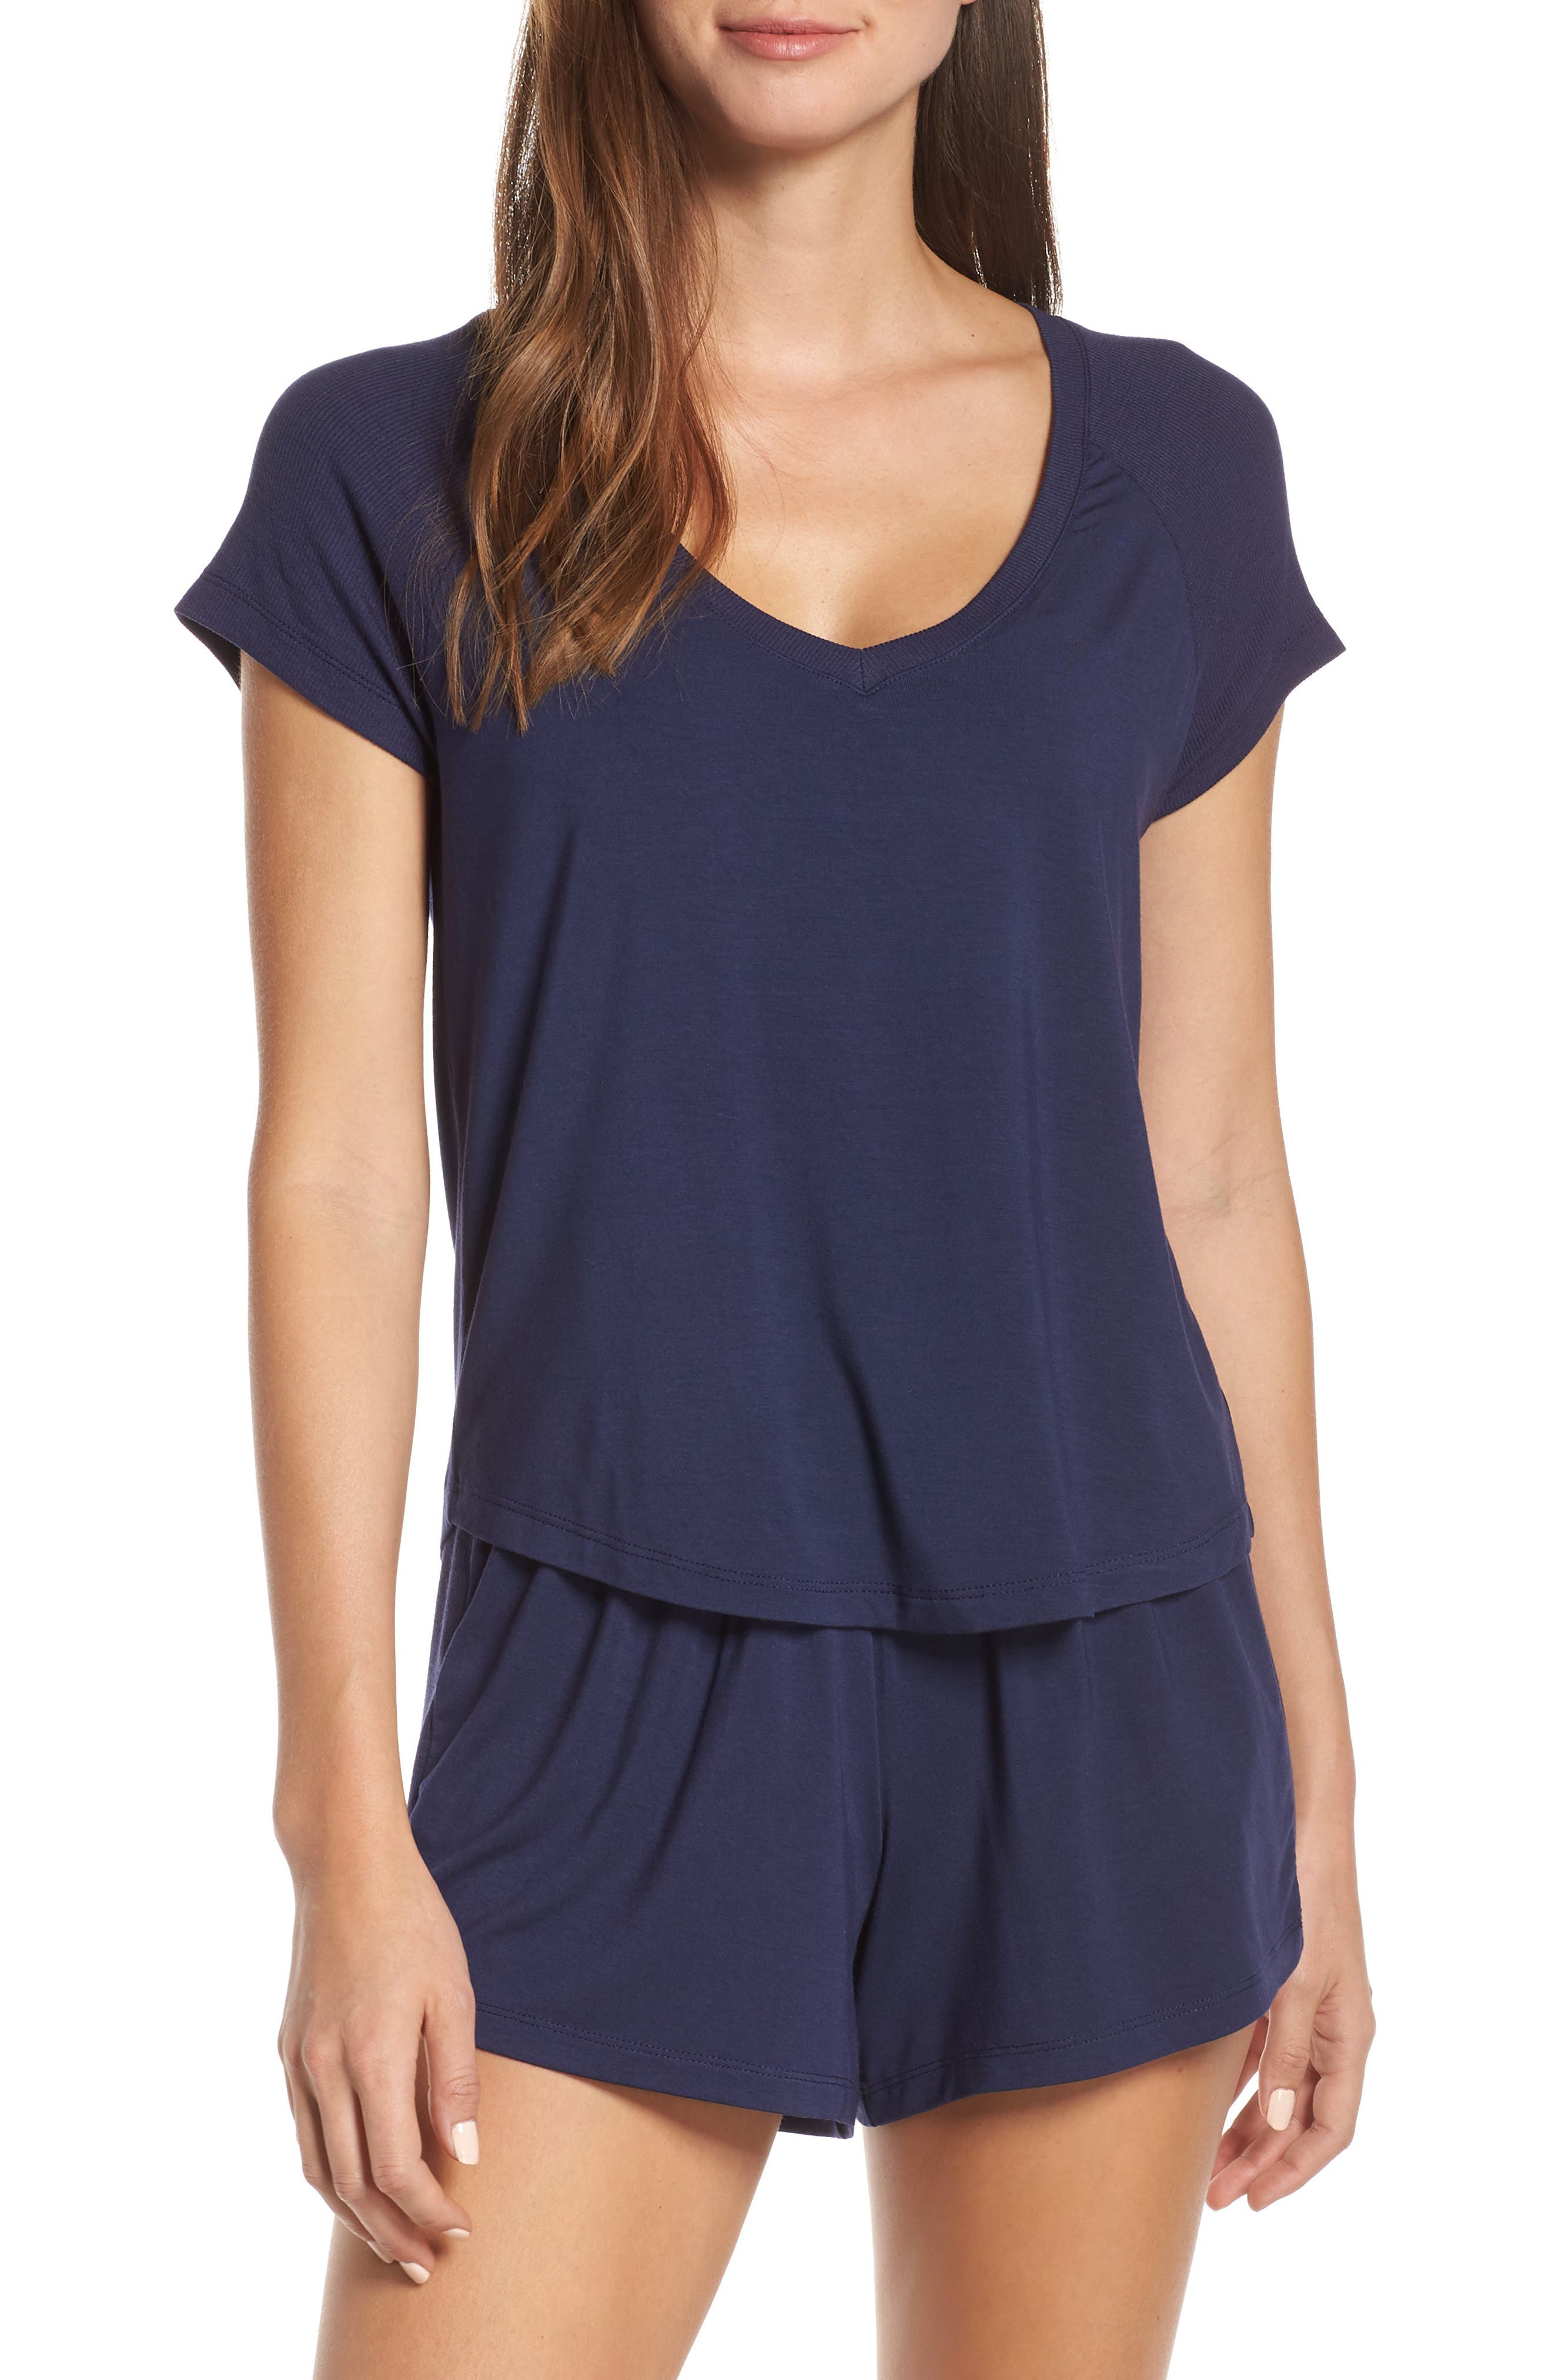 NORDSTROM LINGERIE Breathe Rib Mix Short Pajamas, Main, color, 410